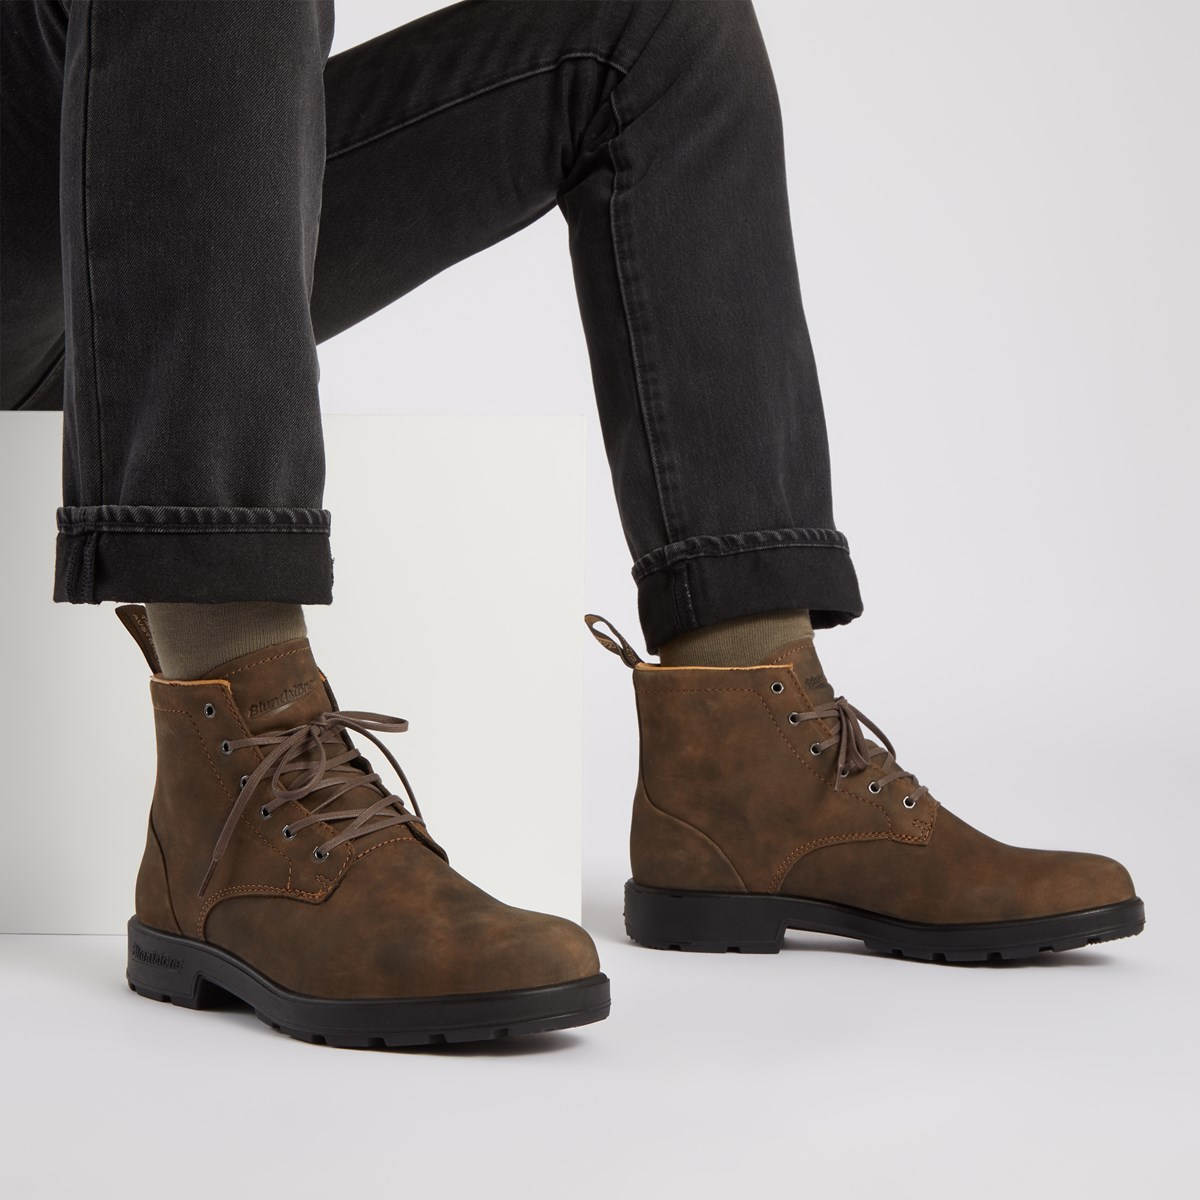 Men's 1937 Lace-Up Boots in Rustic